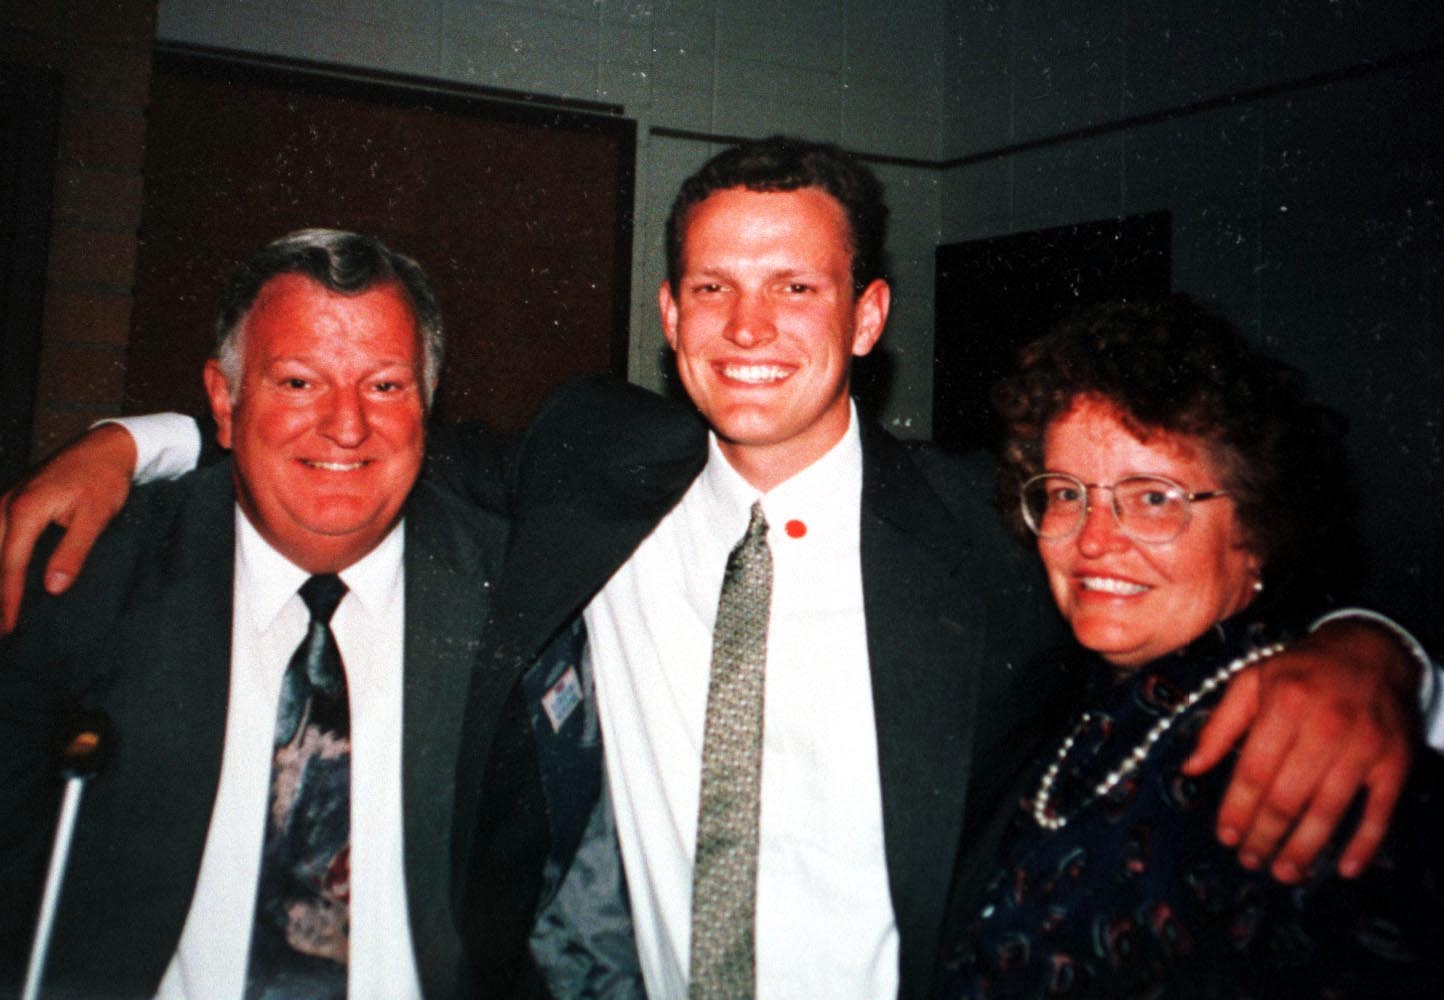 Orin A. Voorheis an LDS missionary in Buenos Aires was shot in the head. Pictured with his parents, Wayne and Florence, just before leaving Argentina.